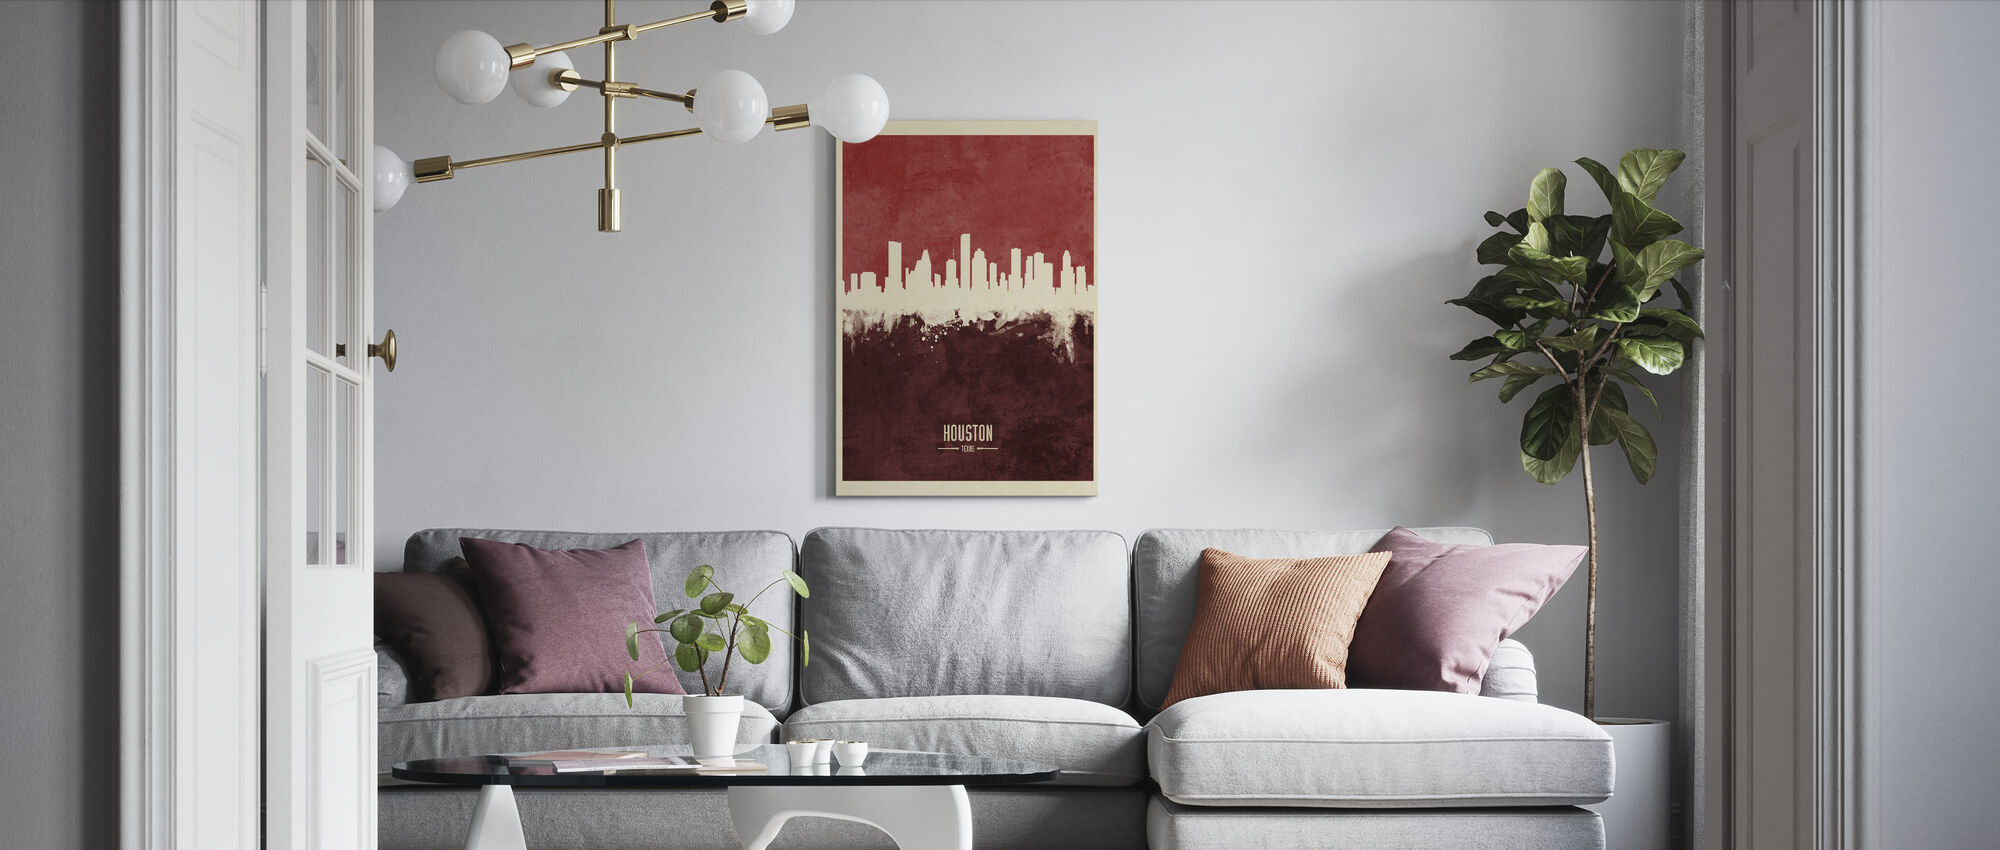 Houston Texas Skyline Red - Canvas print - Living Room